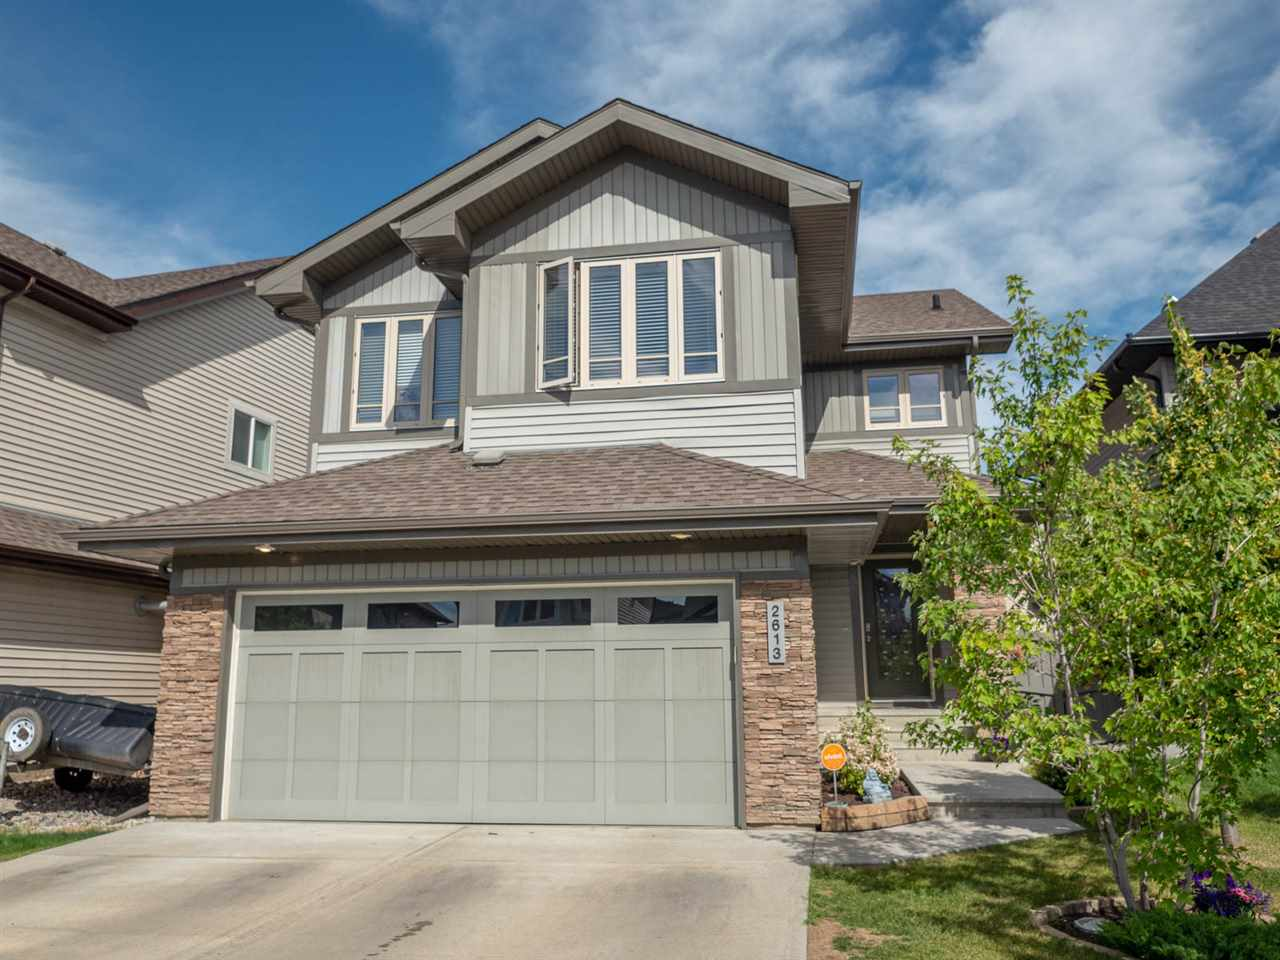 Main Photo: 2613 ANDERSON Crescent in Edmonton: Zone 56 House for sale : MLS®# E4120867